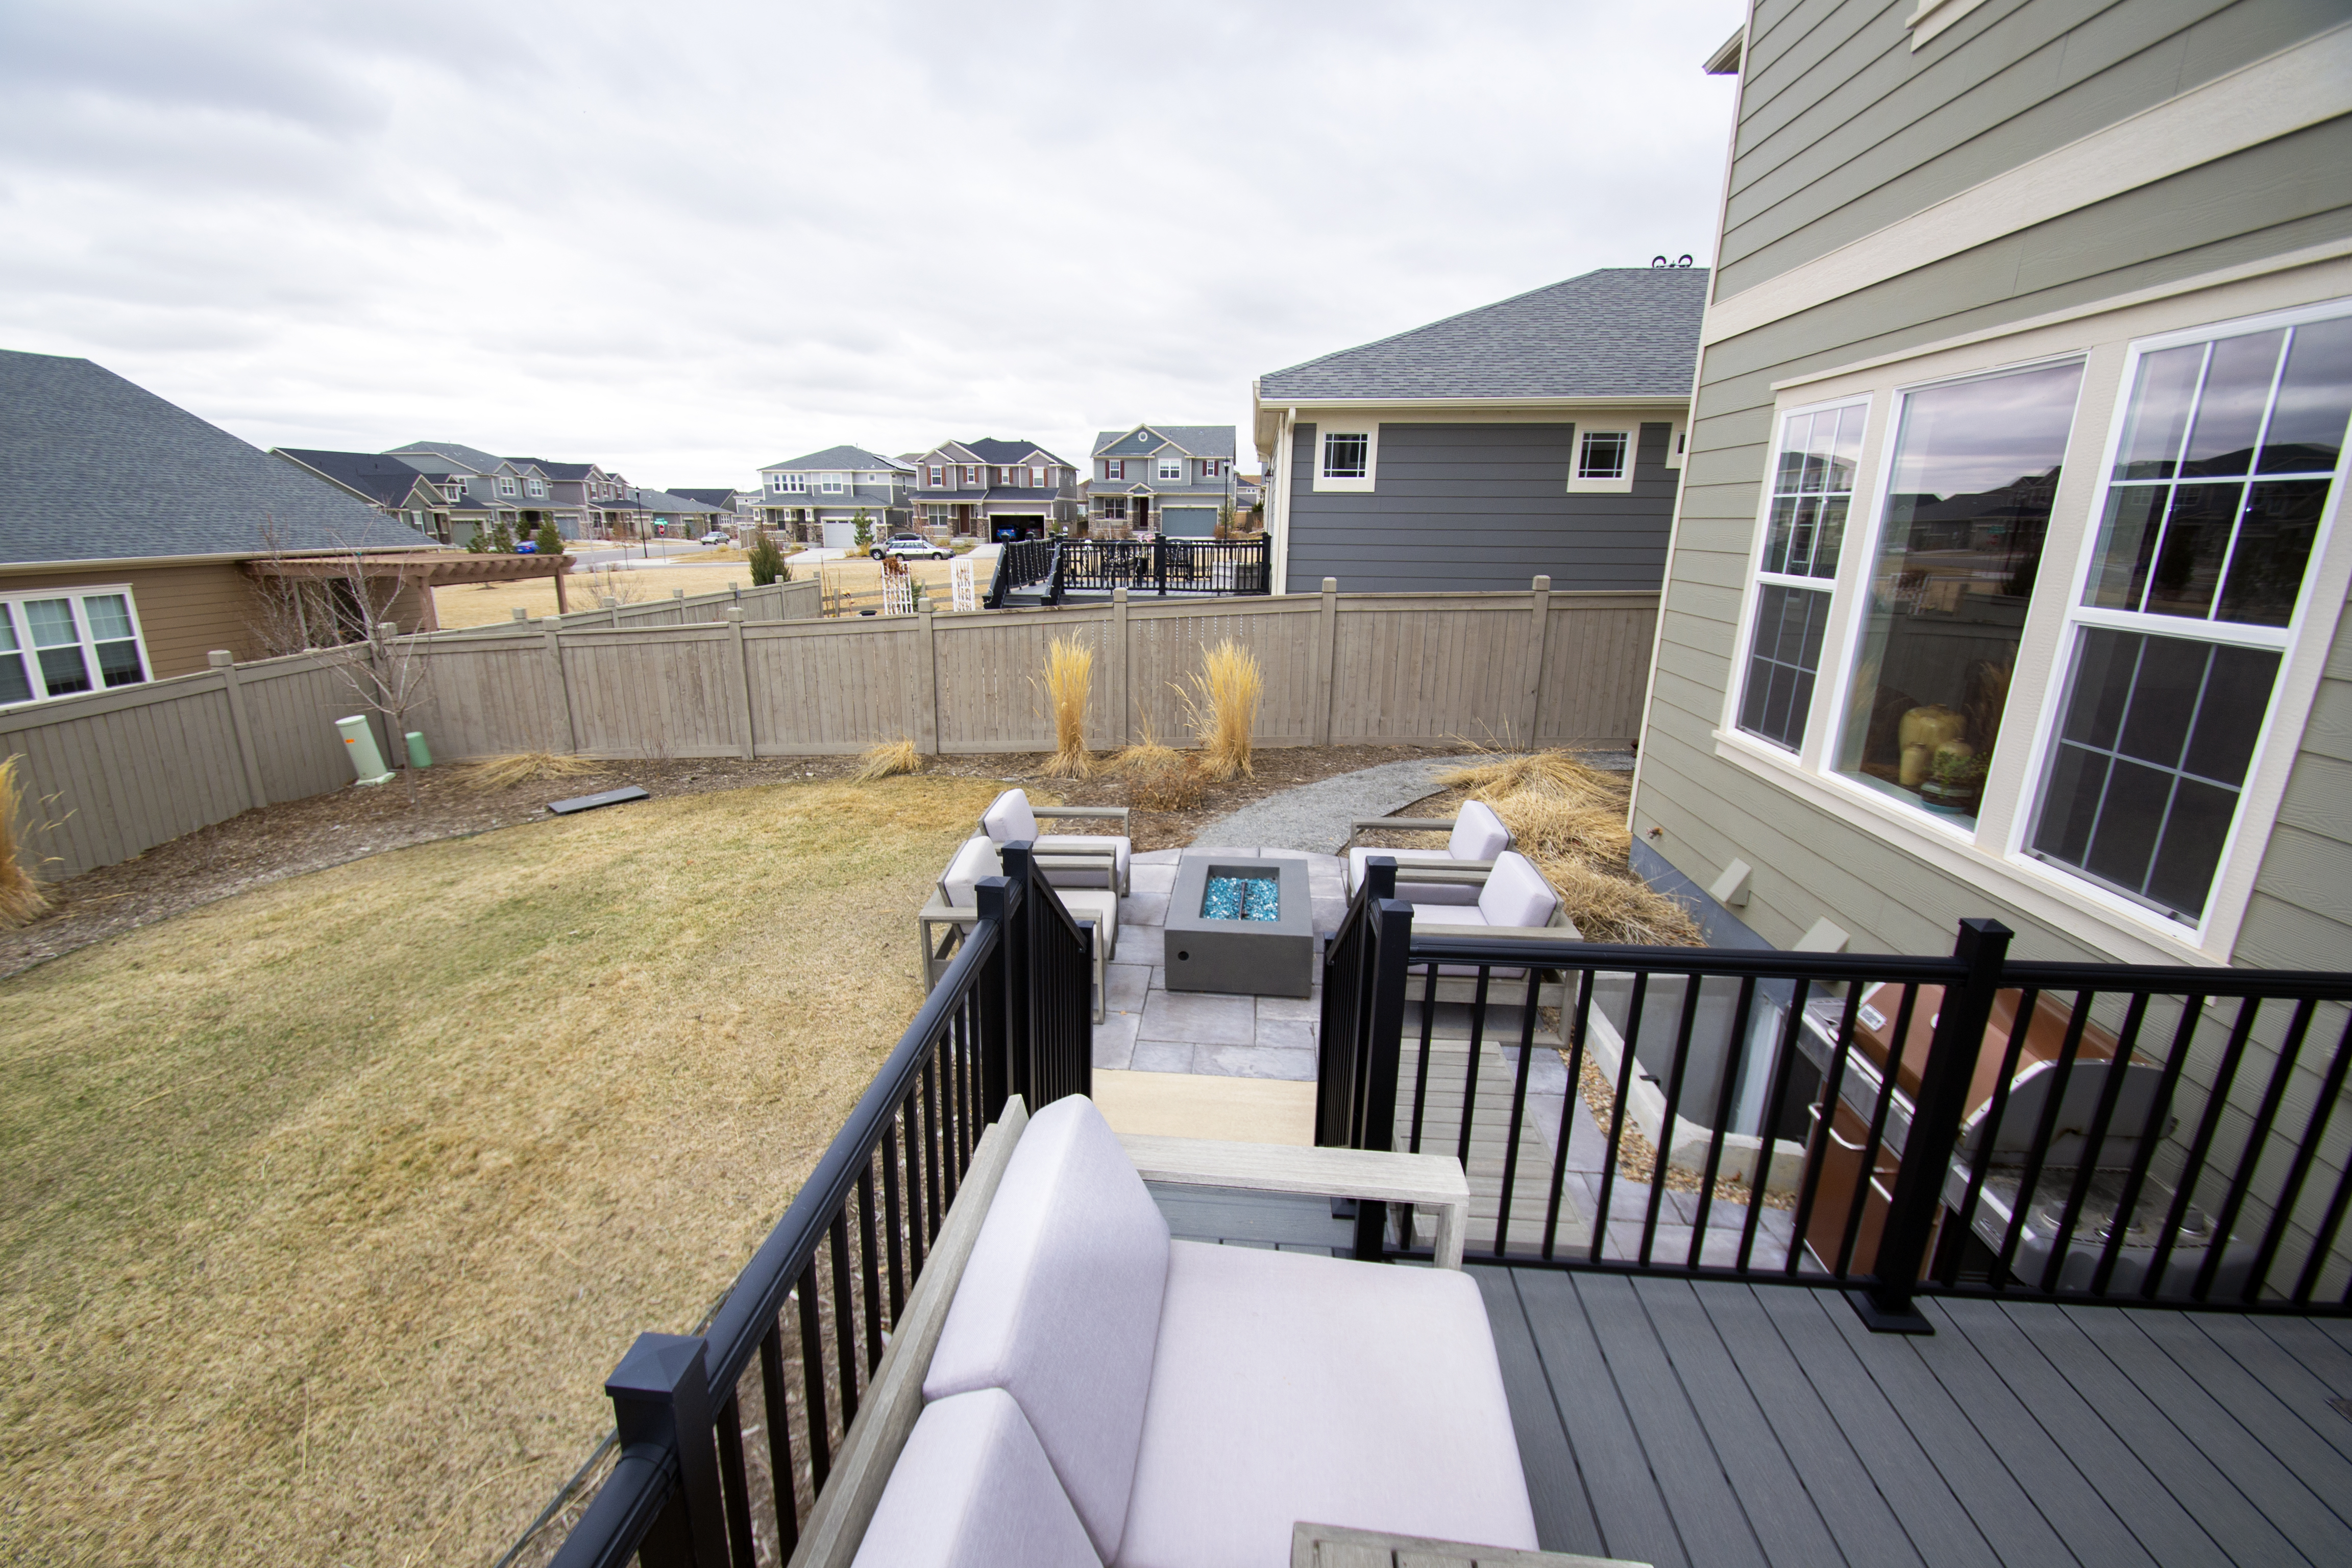 REAL ESTATE LISTING: 1029 Redbud Circle Deck and Patio